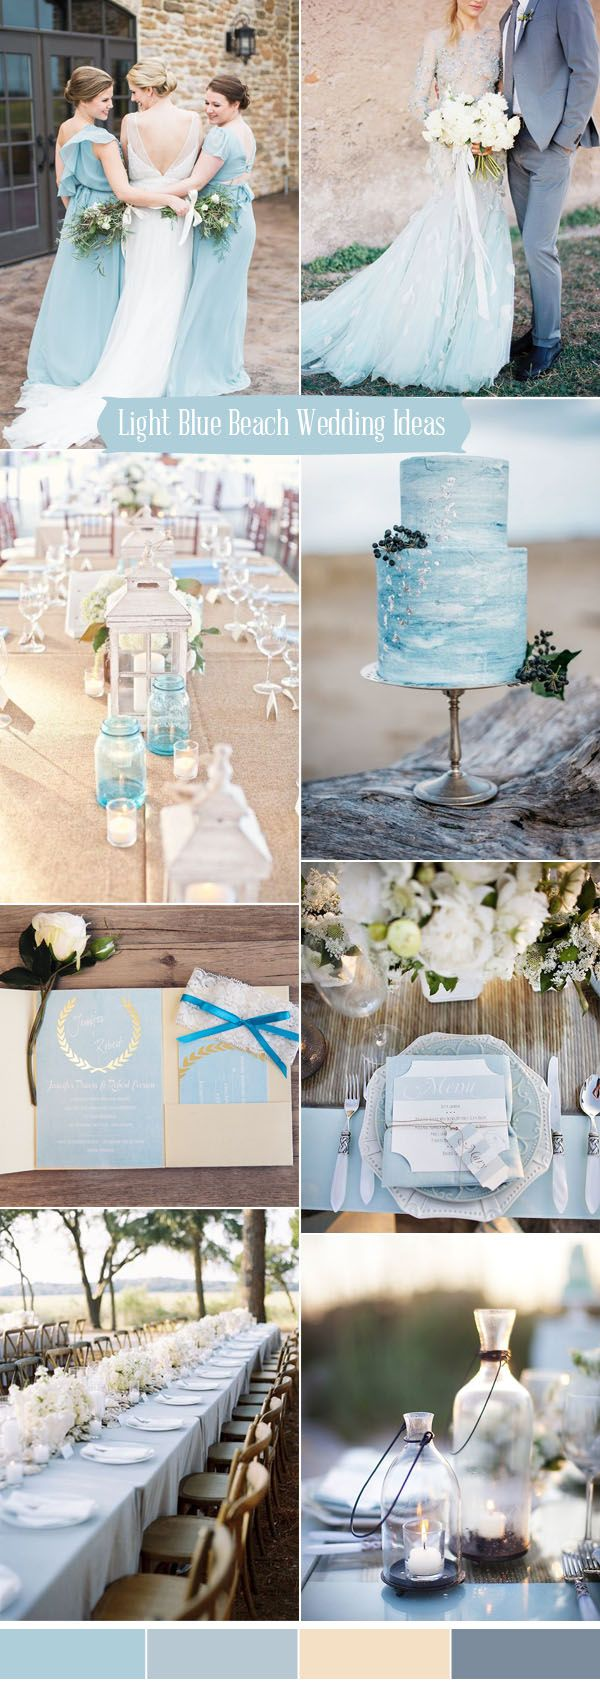 Wedding colors for a beach wedding  Ten Prettiest Shades of Blue for  Wedding Color Ideas  Blue